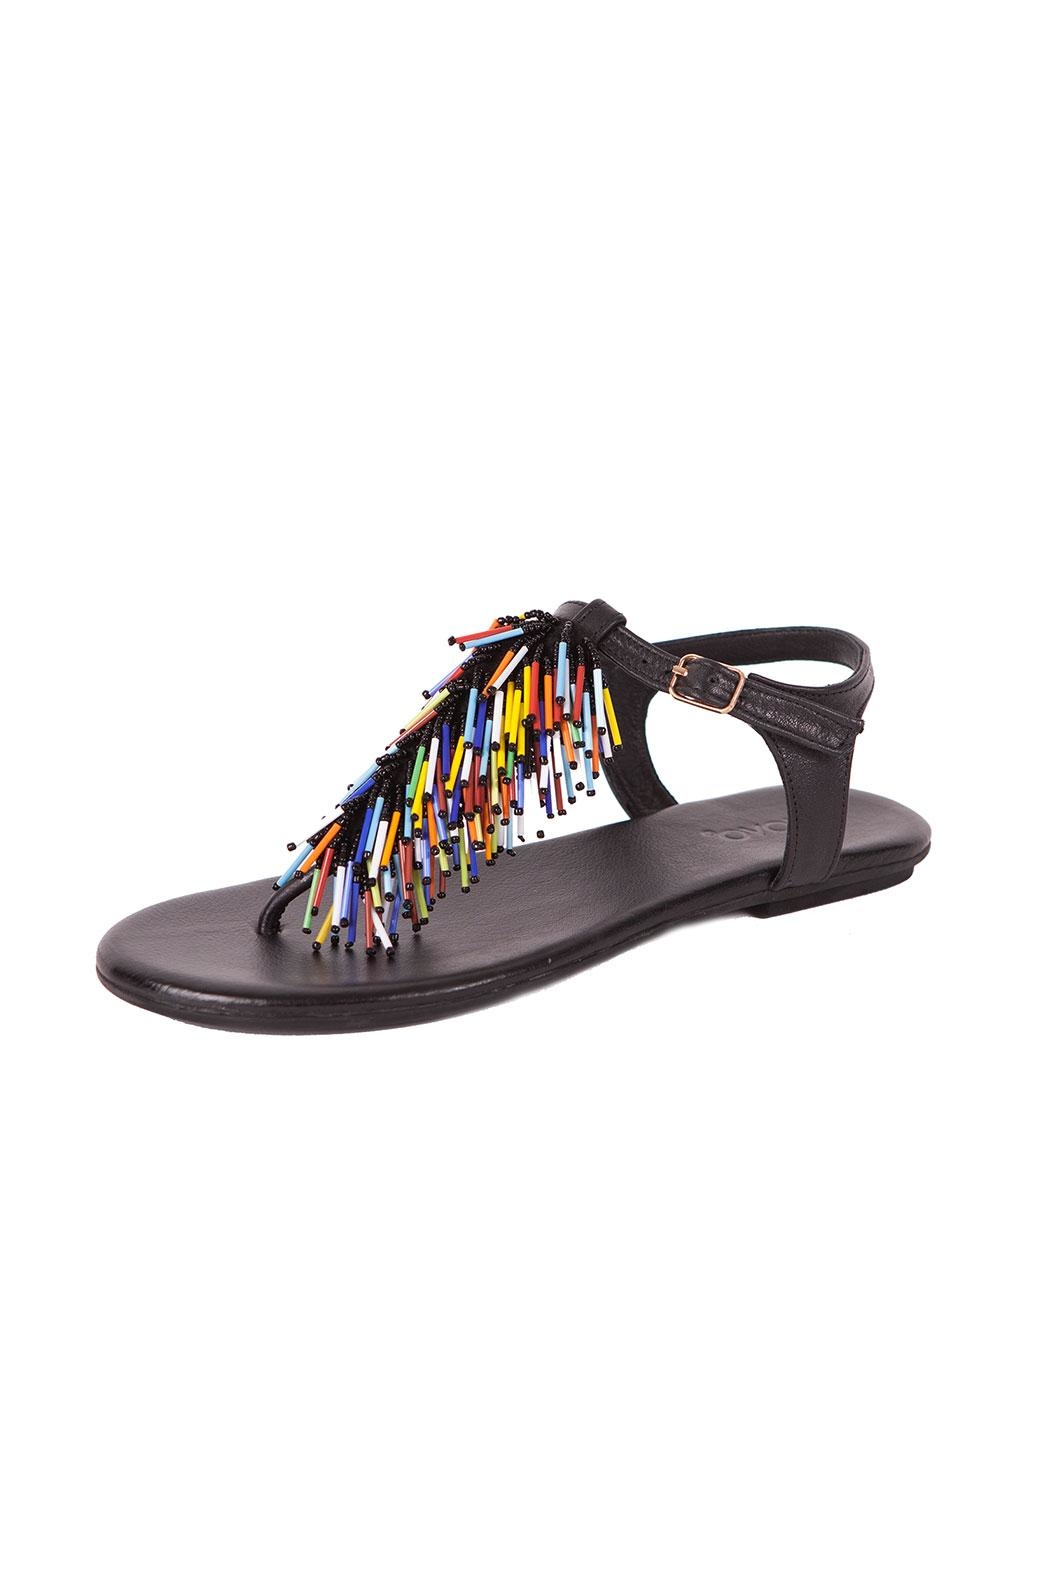 Inuovo Black Leather Sandals - Main Image